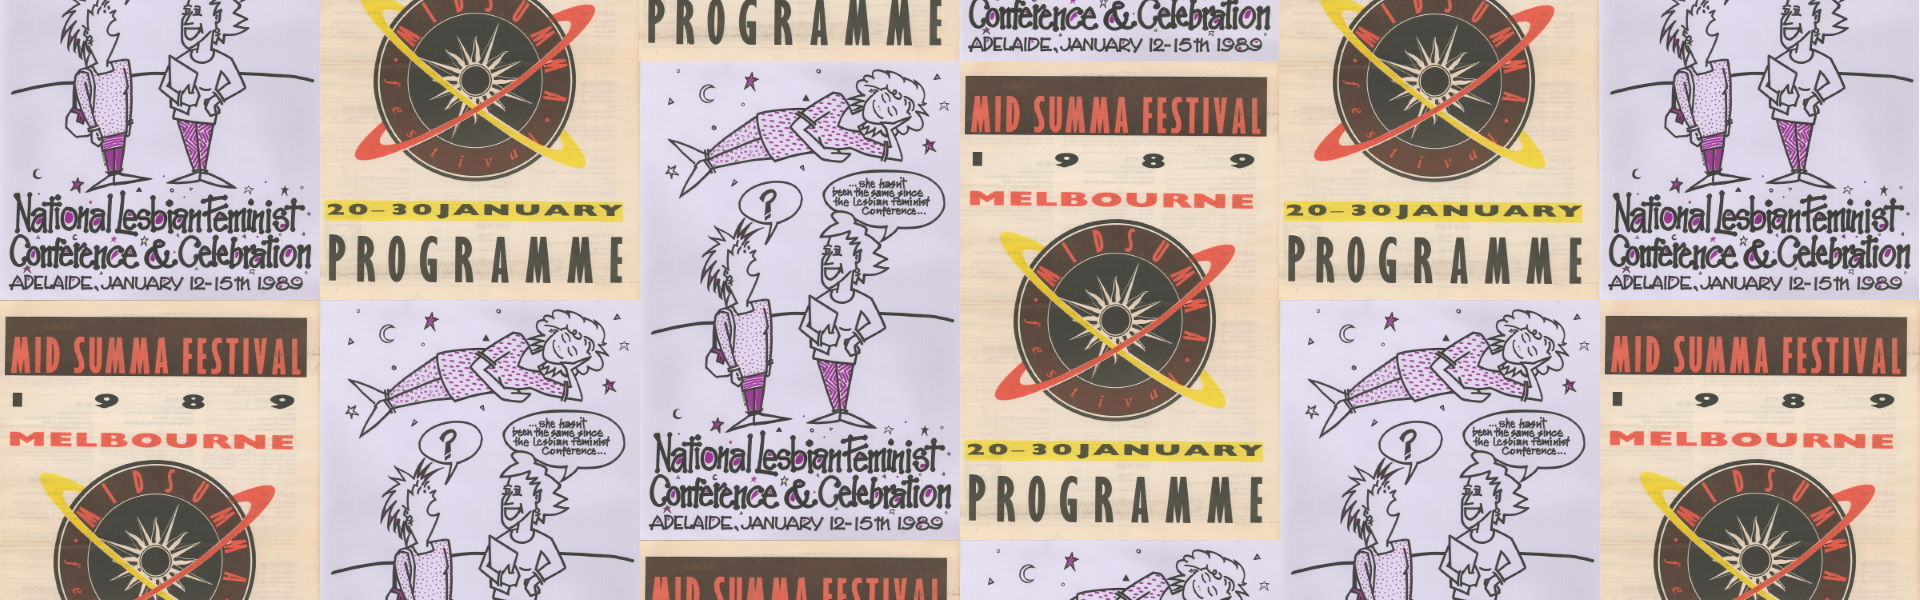 National Lesbian Feminist Conference & Celebration (Adelaide, SA, 1989), Poster Collection D083 and Midsumma Festival Programme, 1989, Periodical Collection